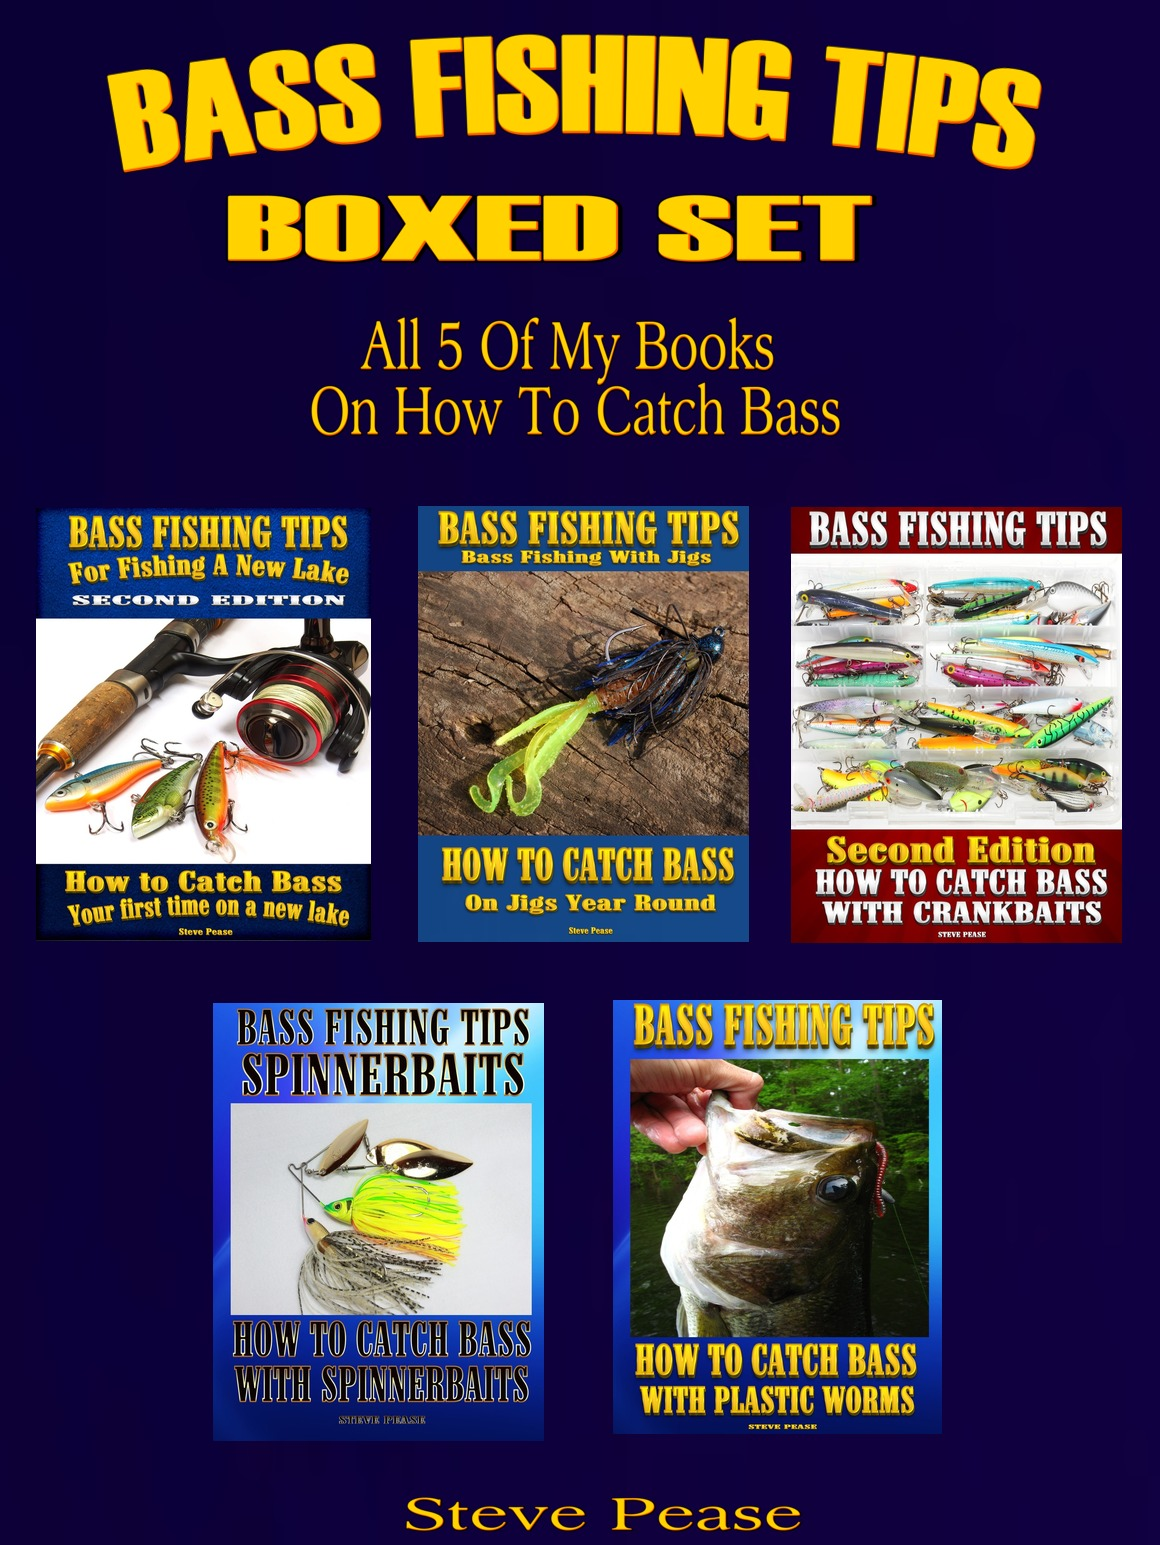 BASS FISHING BOX SET